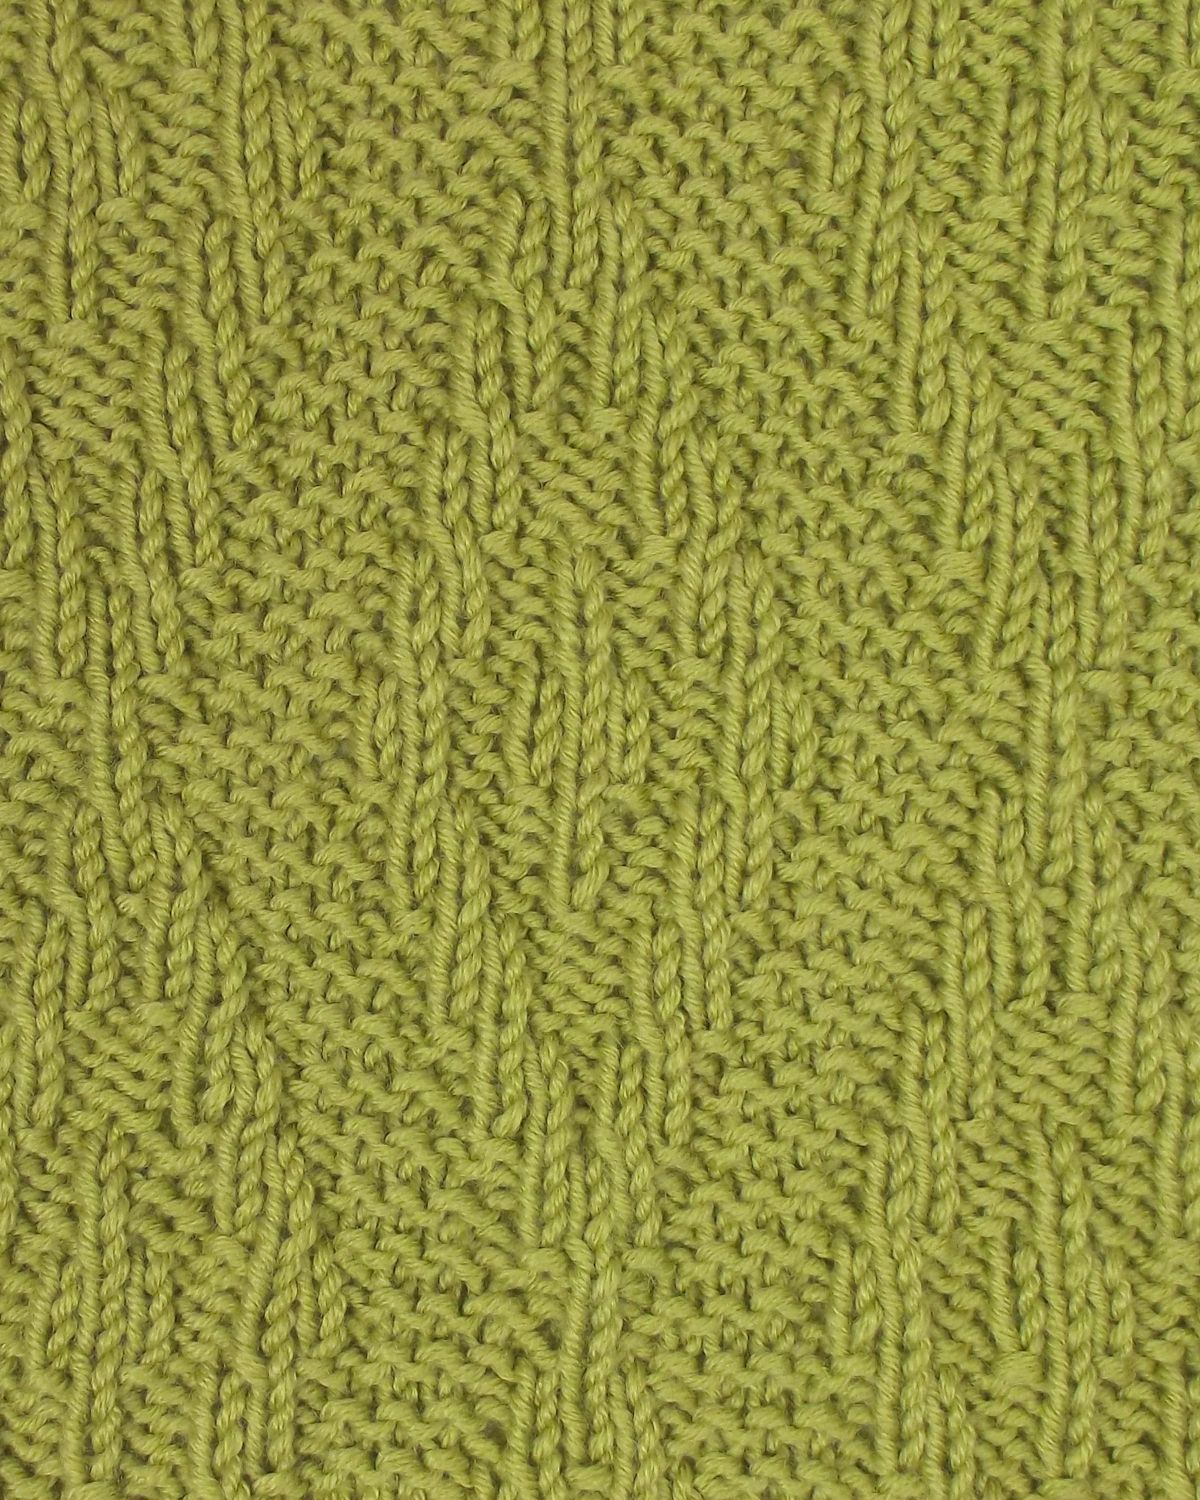 Another great reversible stitch...perfect for winter scarves. The ...